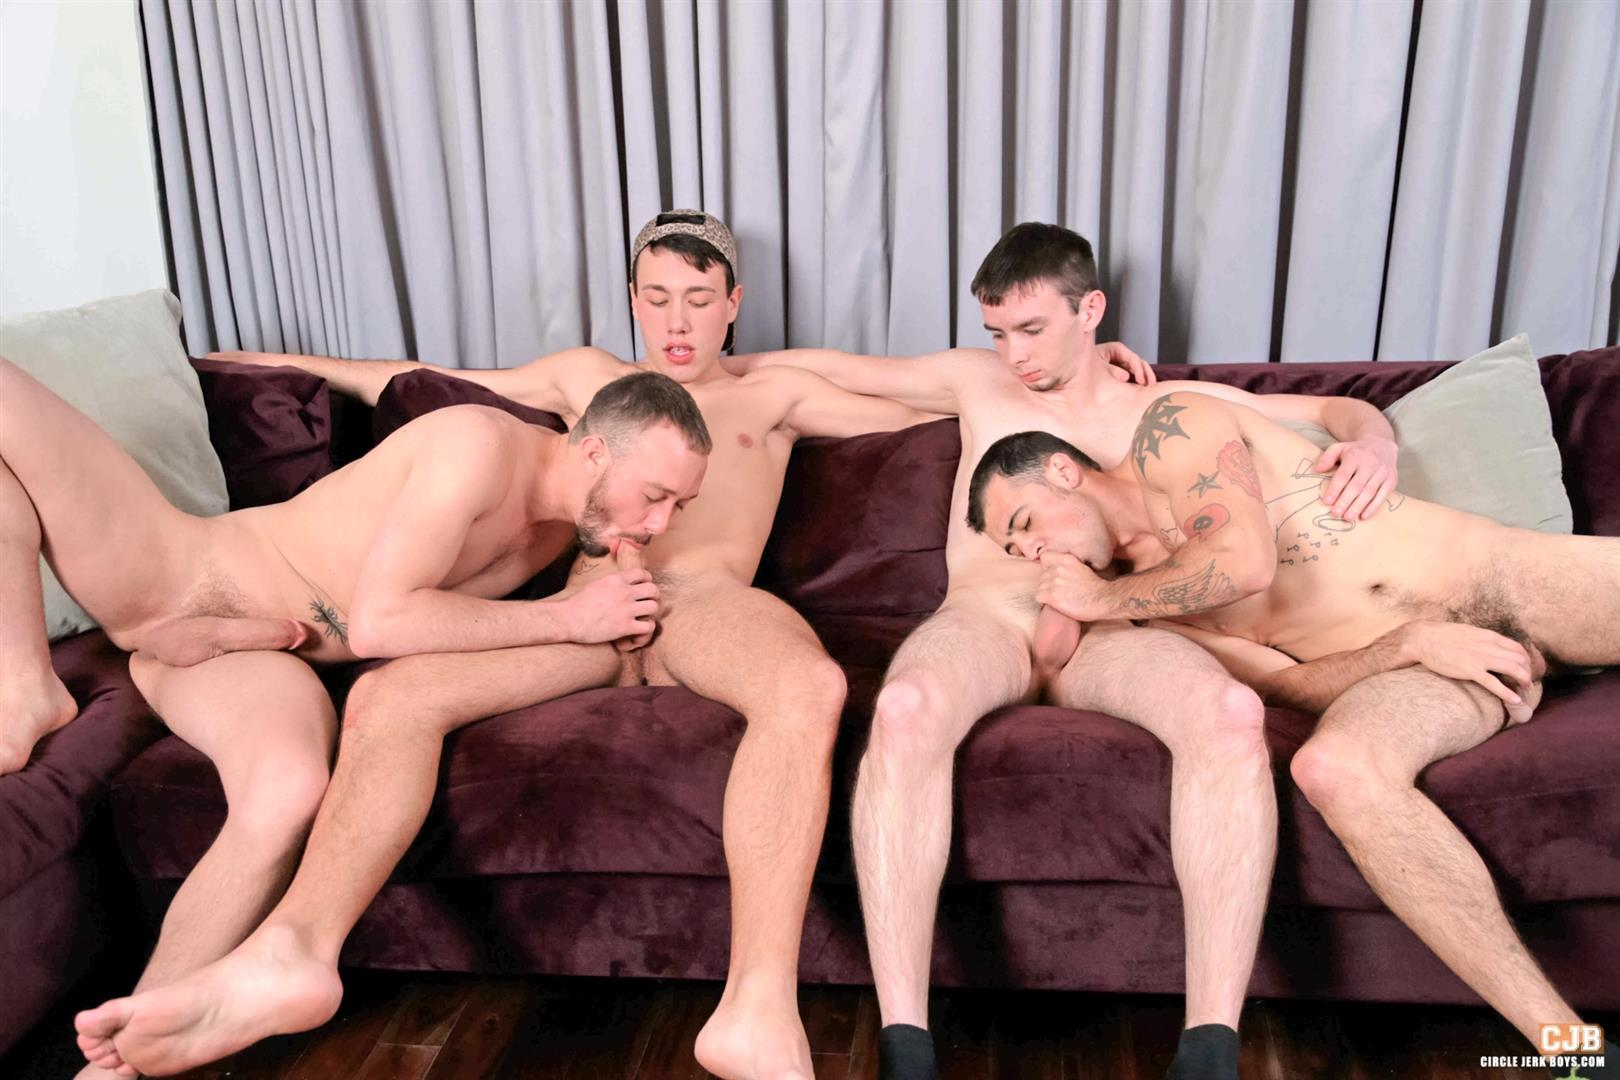 Circle-Jerk-Boys-Kirk-Cummings-and-Trent-Jackson-and-Jake-Jammer-and-Blake-Stone-Cock-Sucking-Young-Guys-Amateur-Gay-Porn-04 4 Hard Cocks, 4 Young Men, 4 Cock Suckers, 4 Loads Of Cum